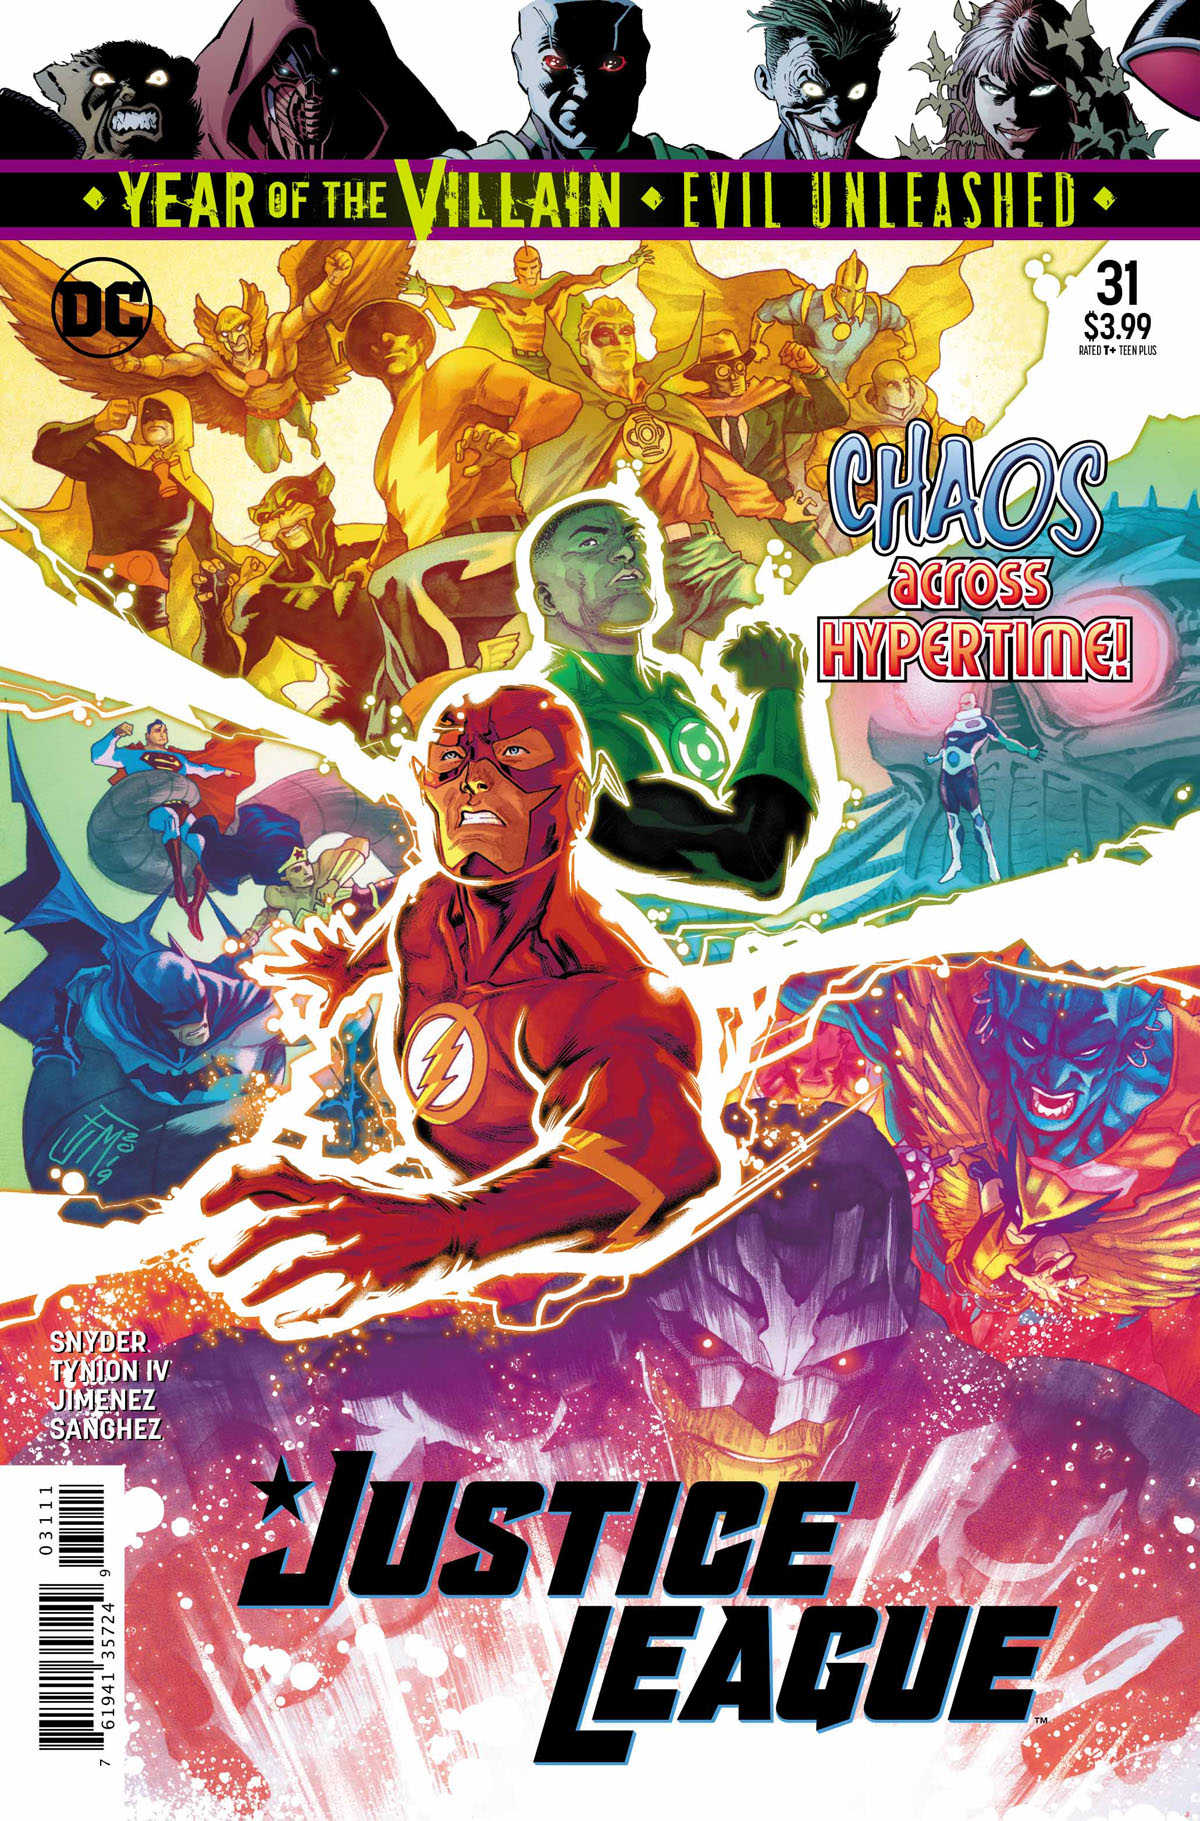 Justice League #31 cover